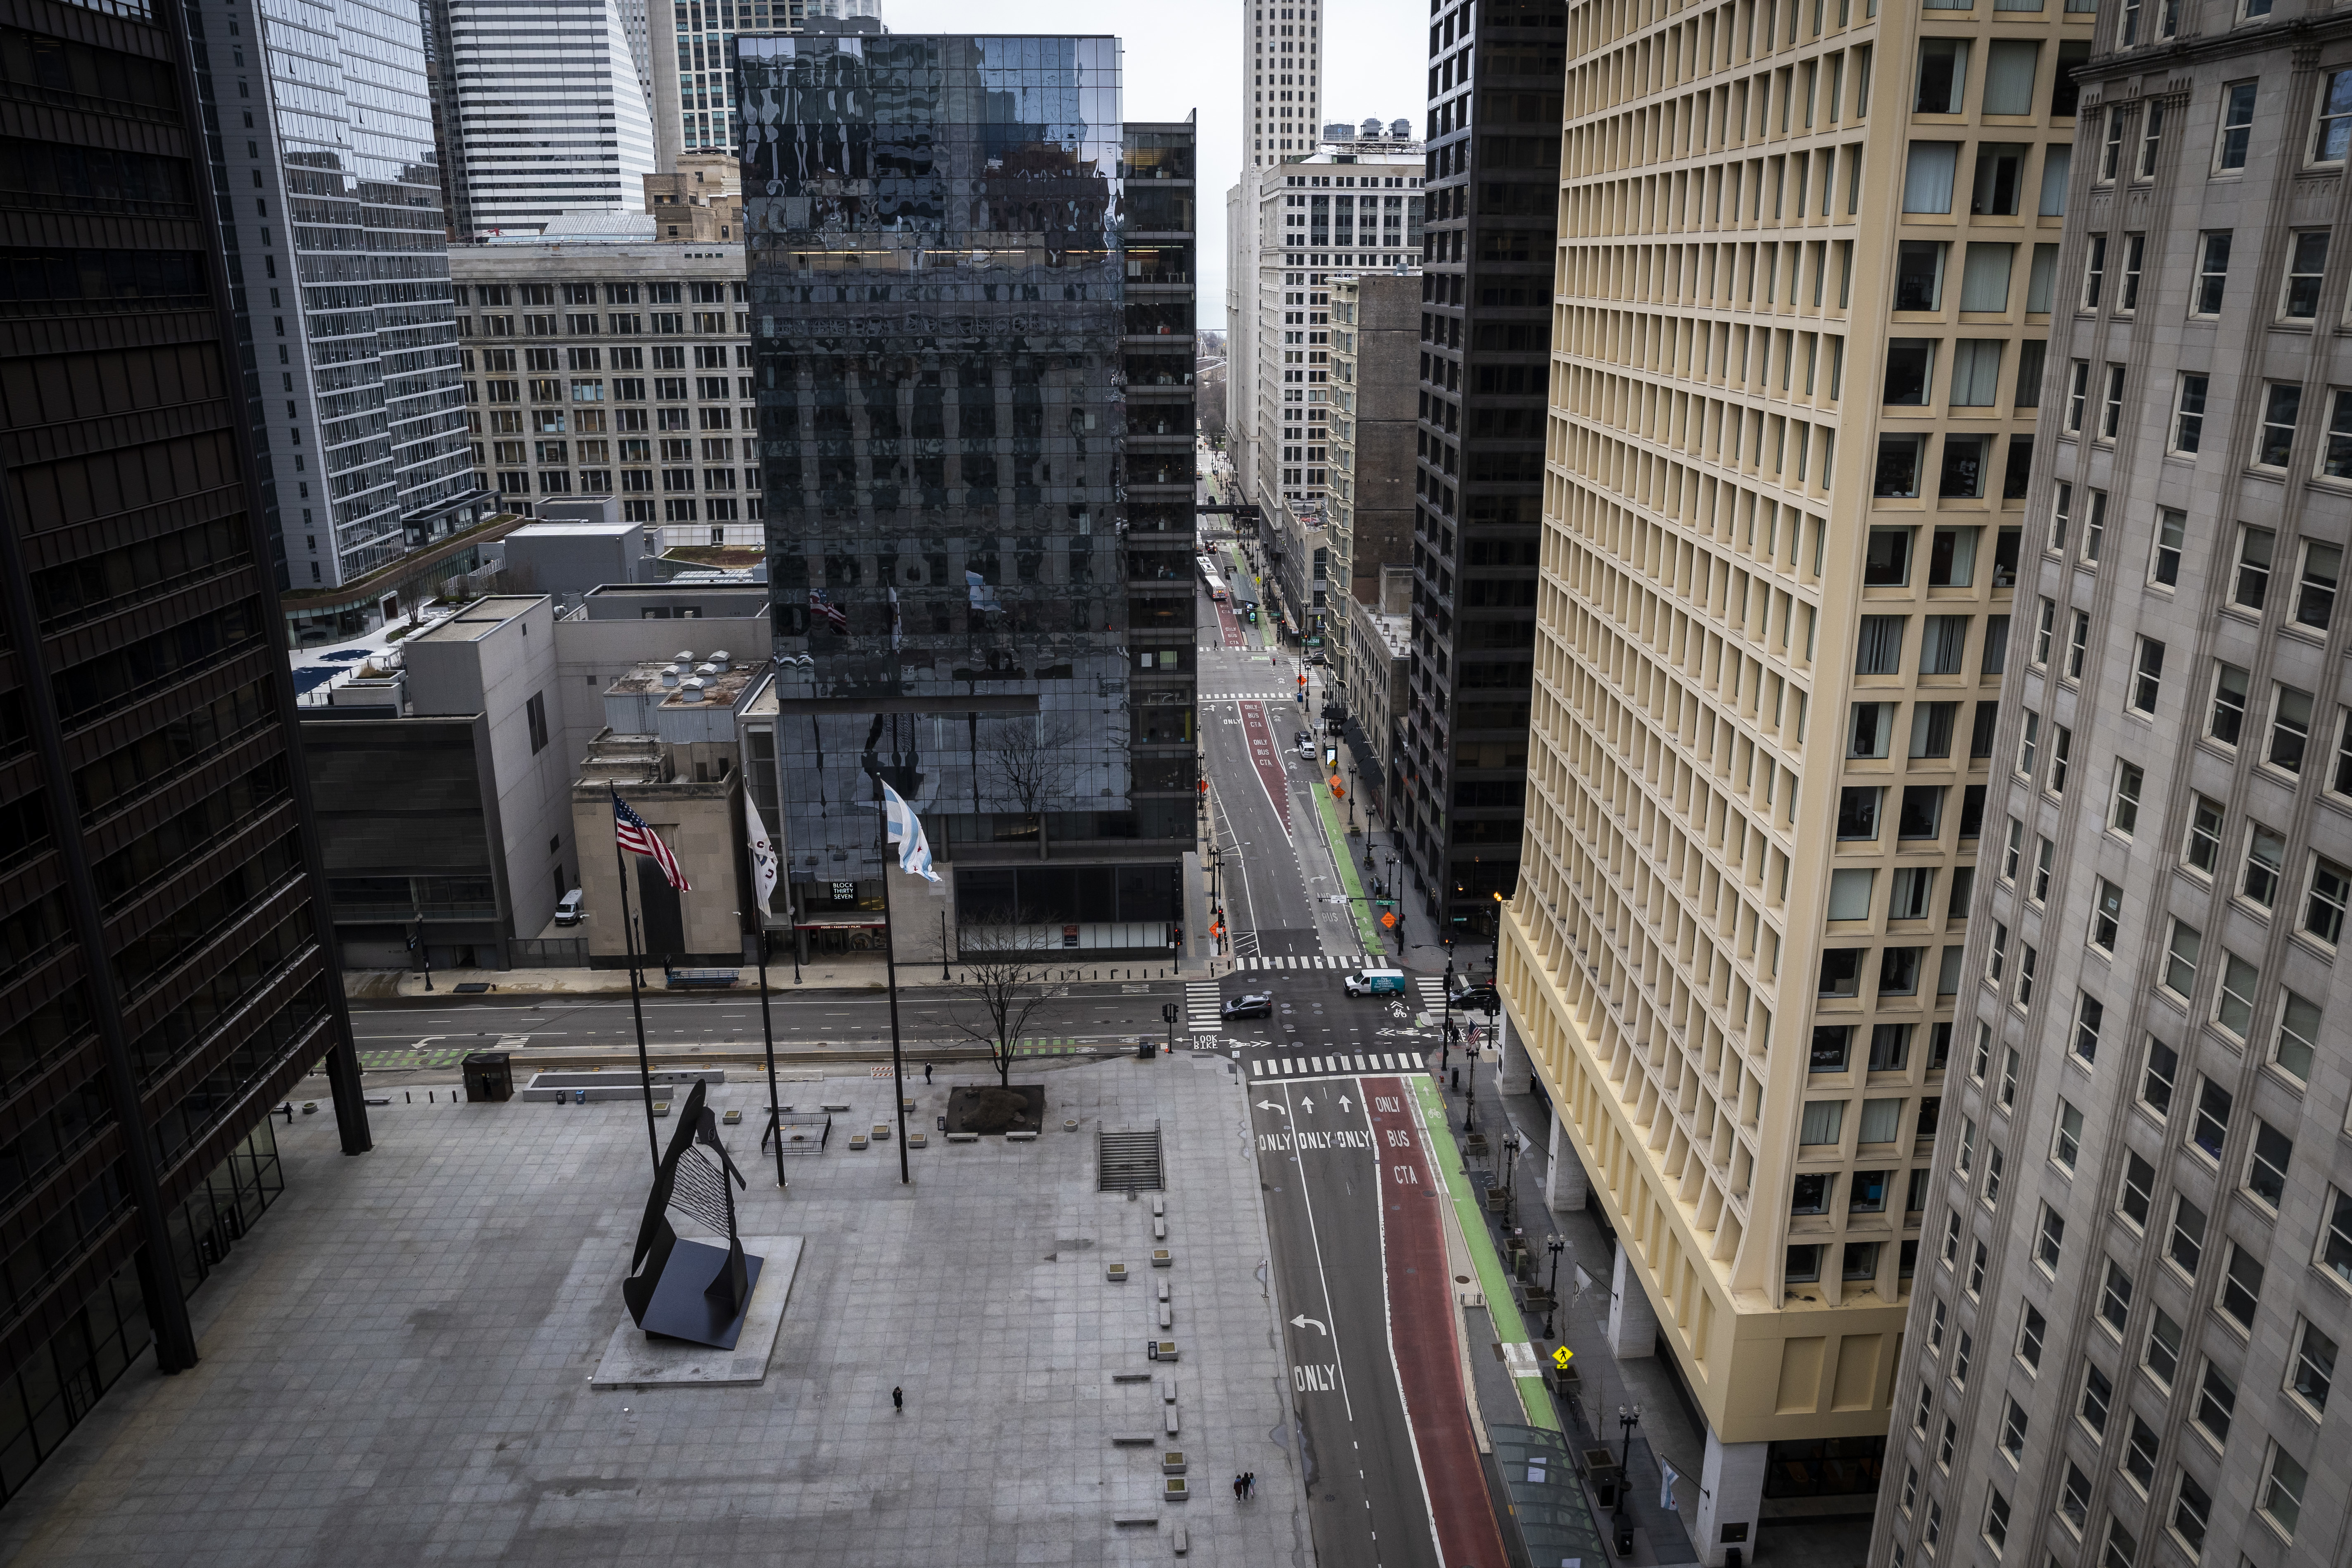 The Chicago economy is being hit hard by the global pandemic, and the cost is likely to exceed half a billion dollars, according to the city's chief financial officer.